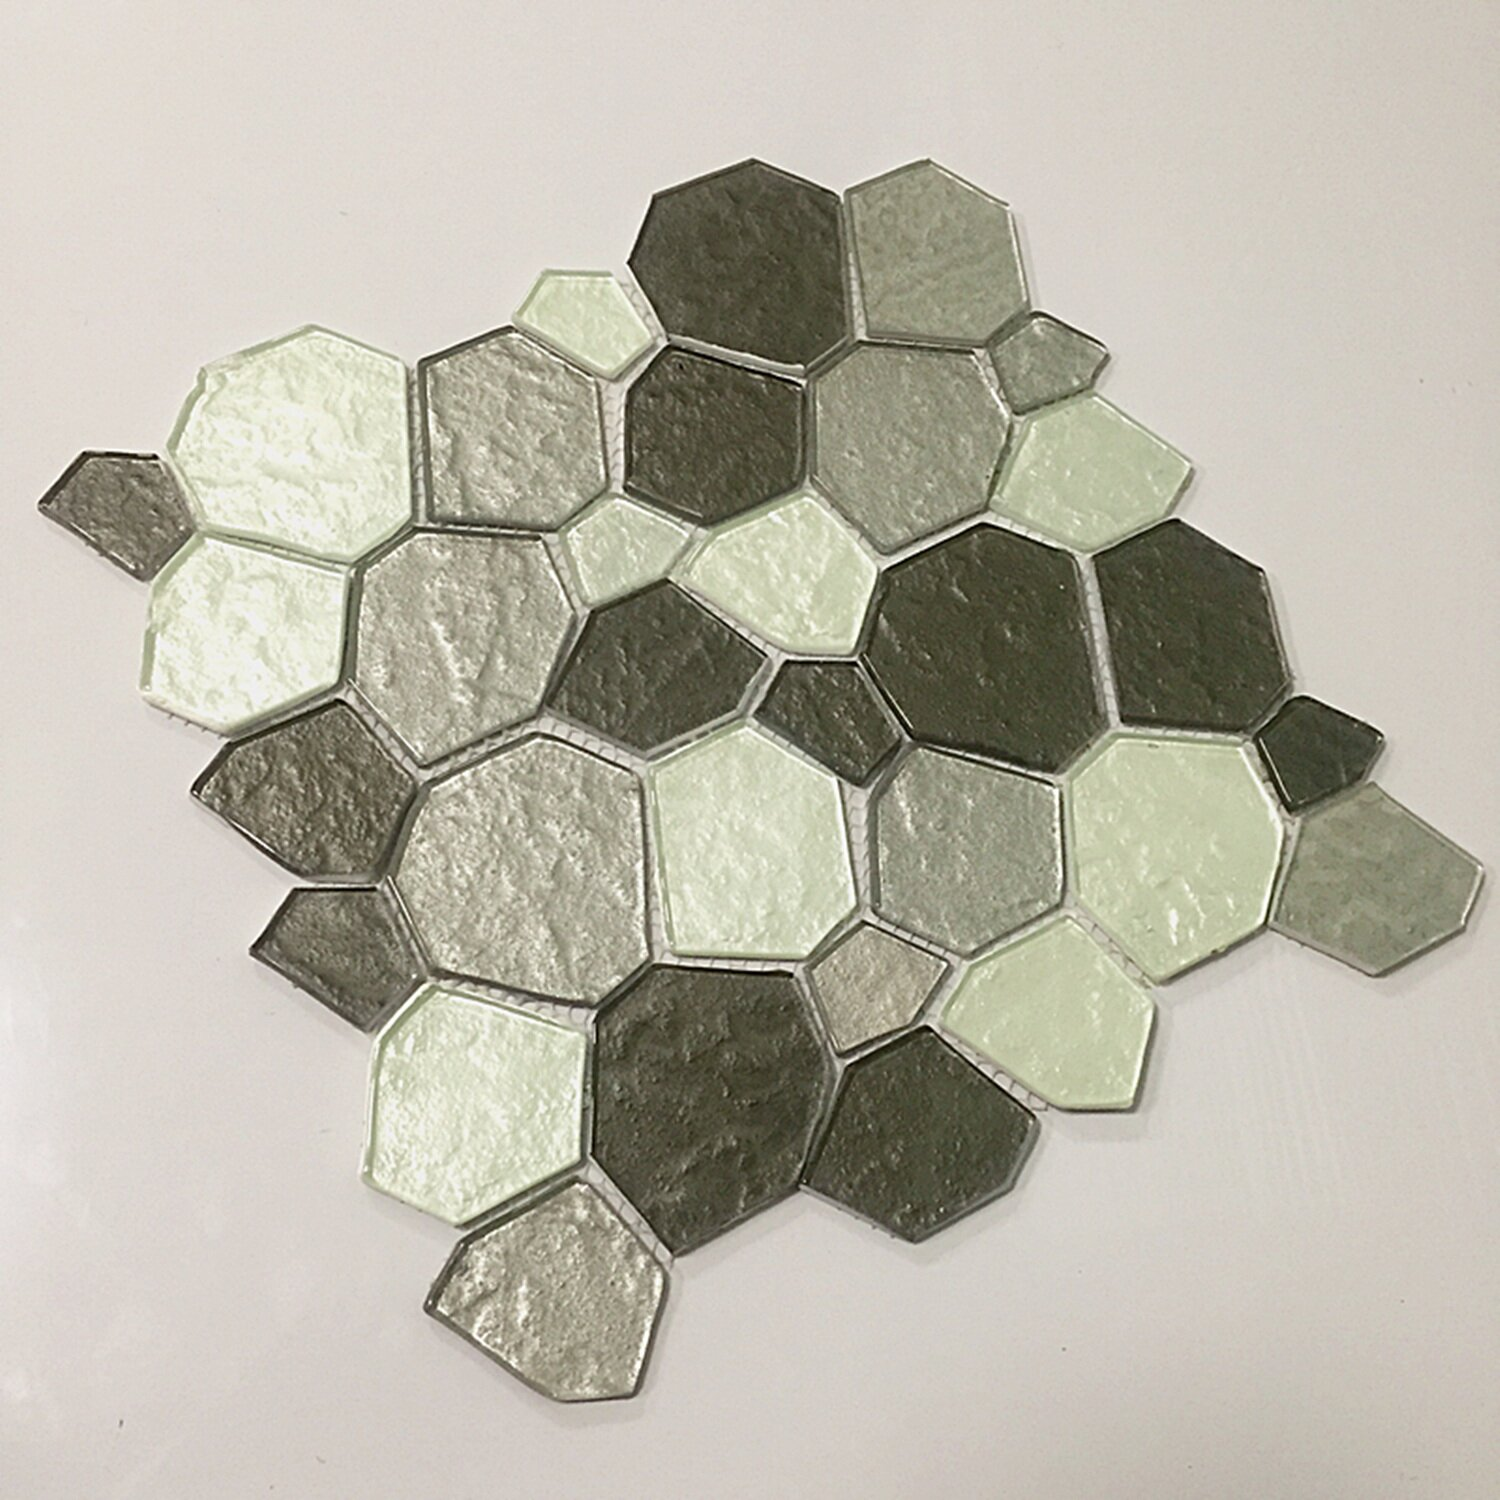 instant mosaic 12 x 12 glass peel stick mosaic tile in gray silver reviews wayfair. Black Bedroom Furniture Sets. Home Design Ideas